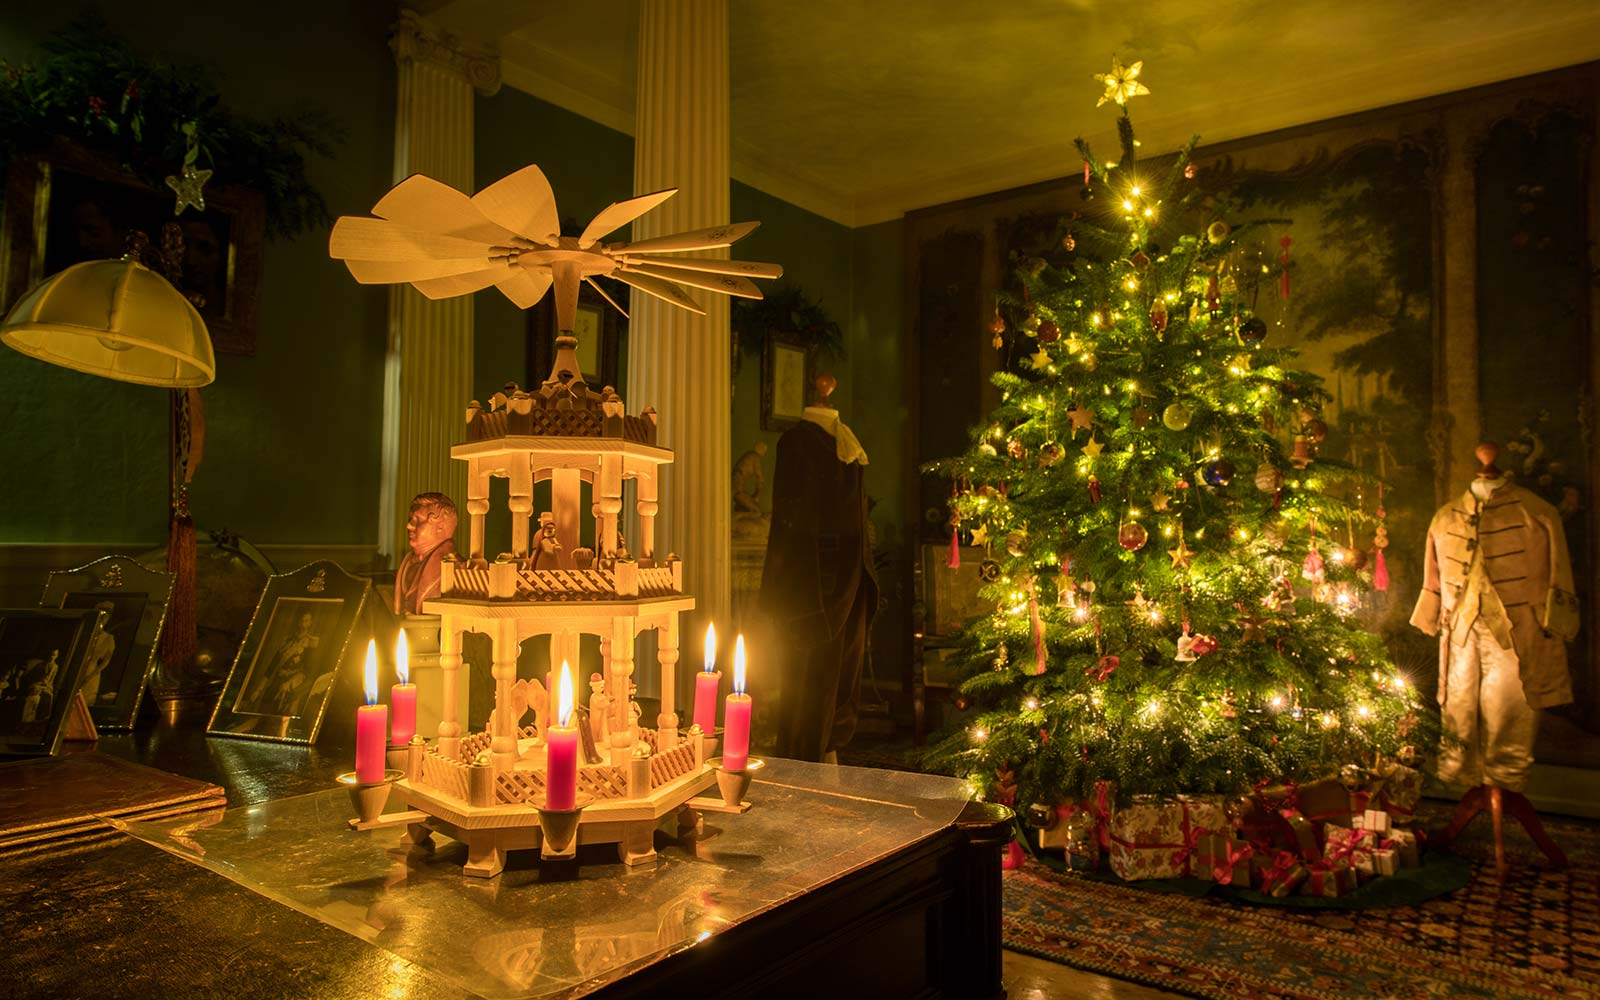 A Candlelit Christmas at Stonor Park 2019